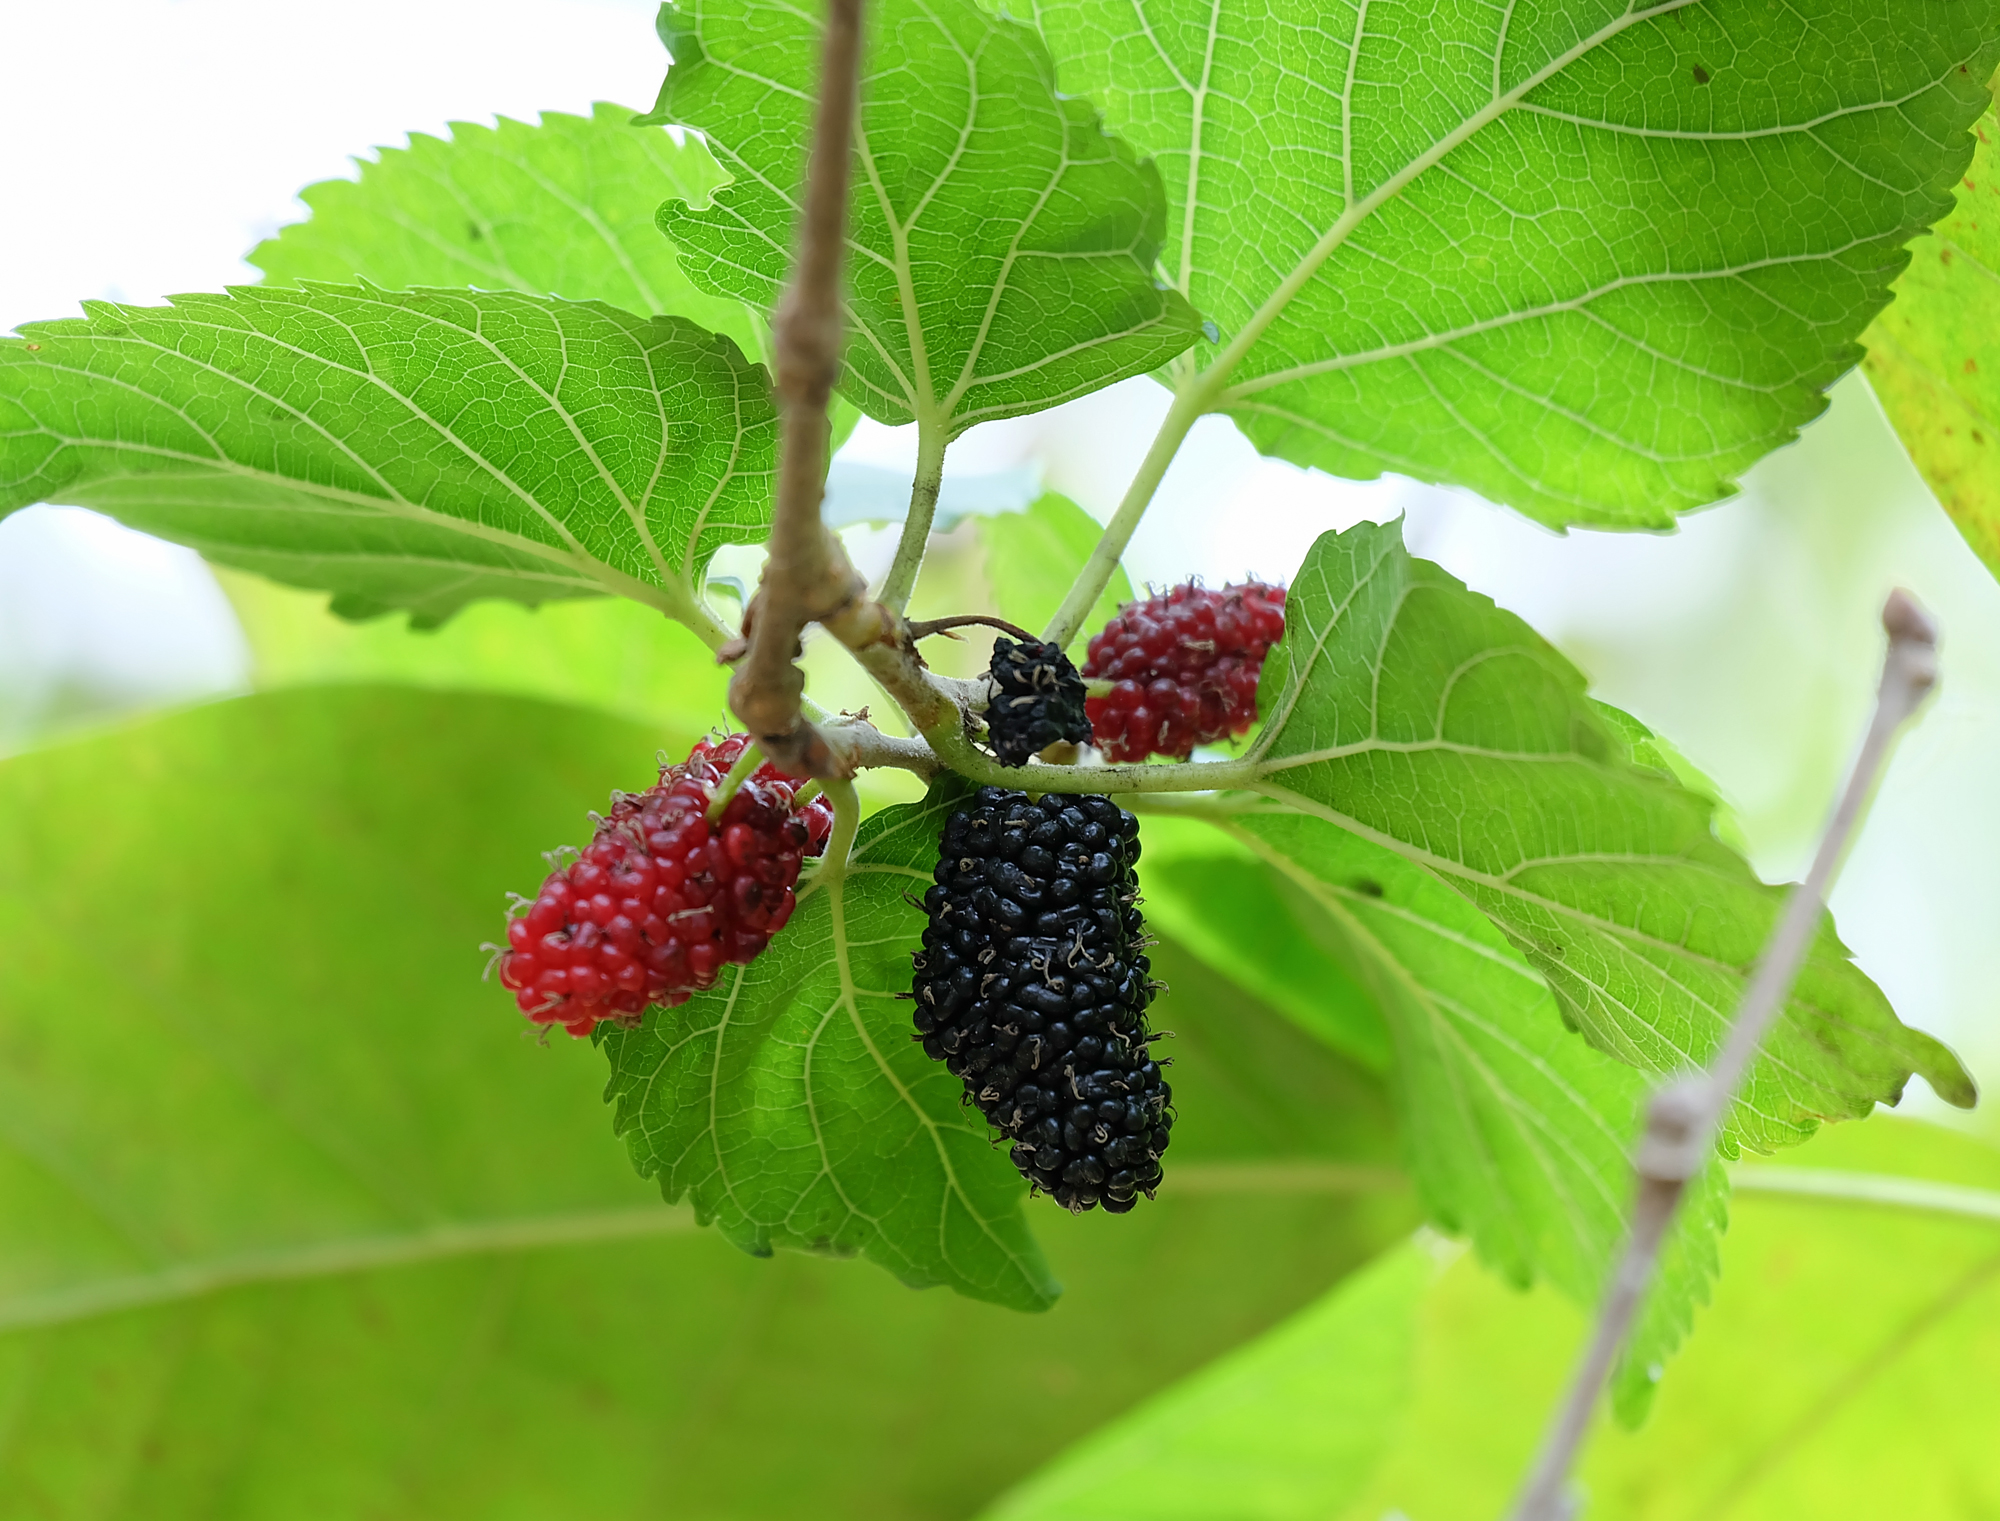 Mull this over: Berry compound helps you burn fat